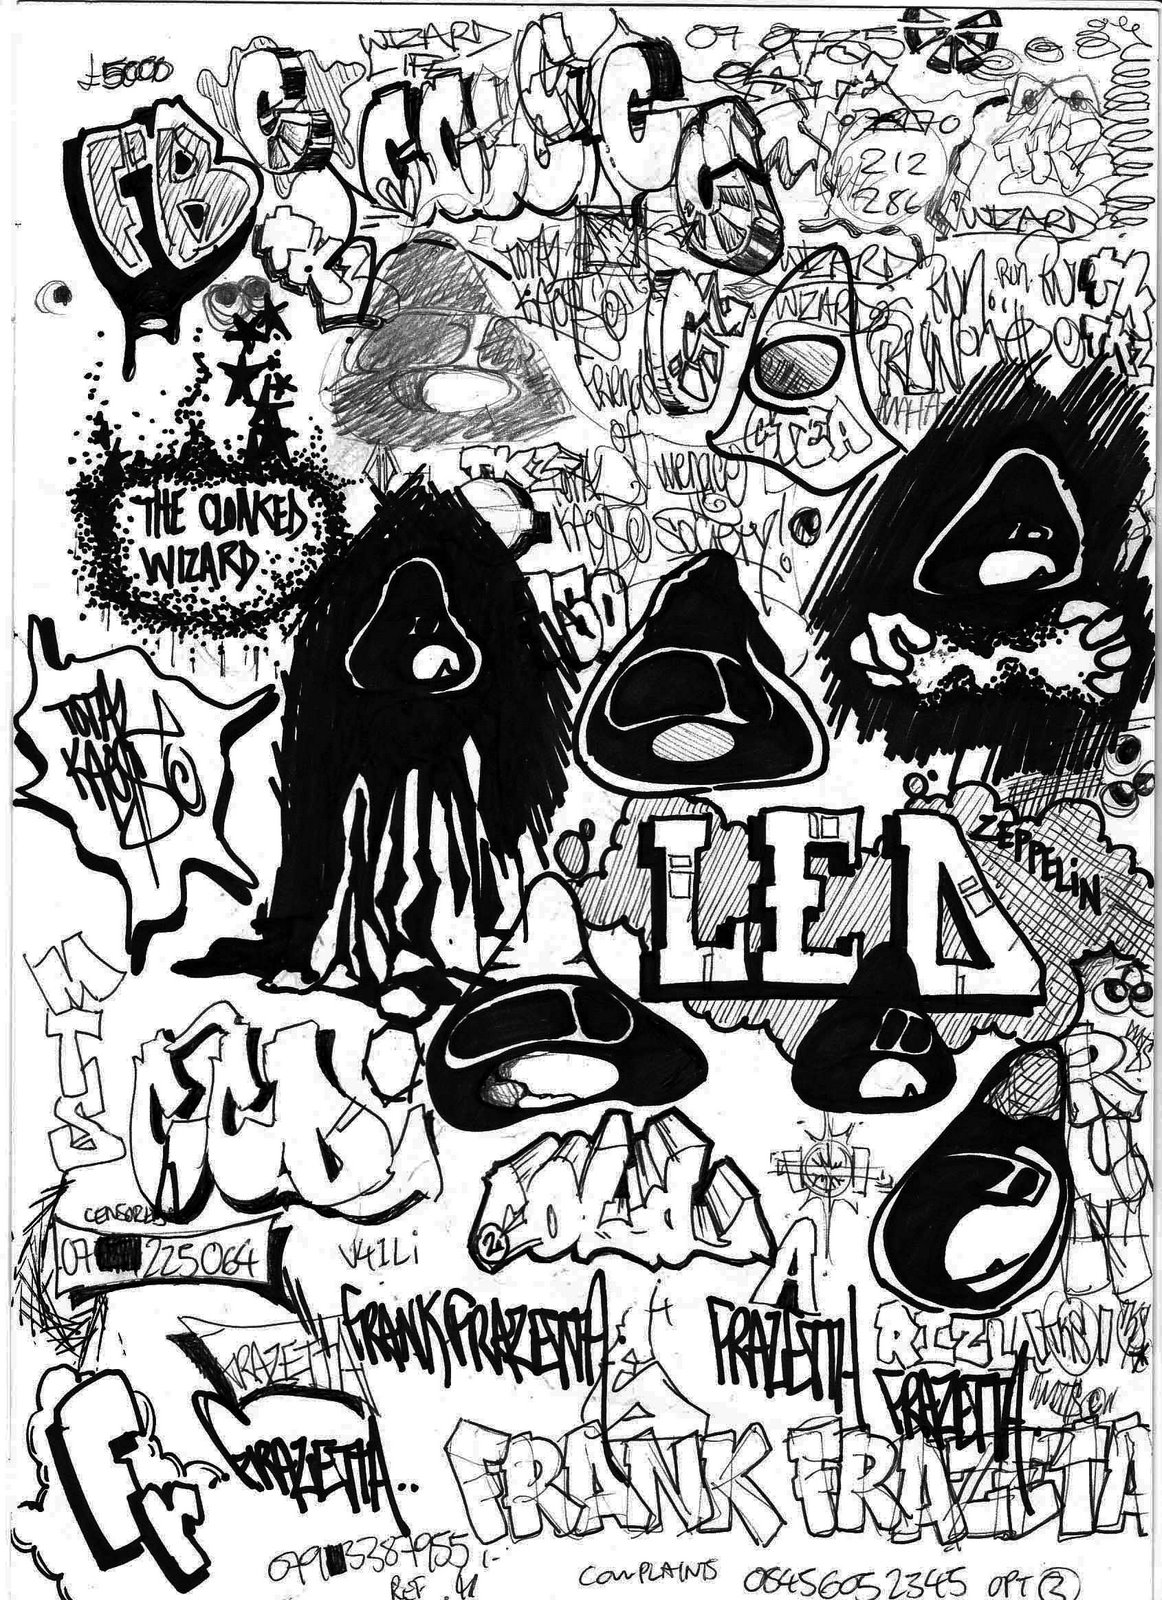 graffiti tag doodle graffiti and street art coloring pages for